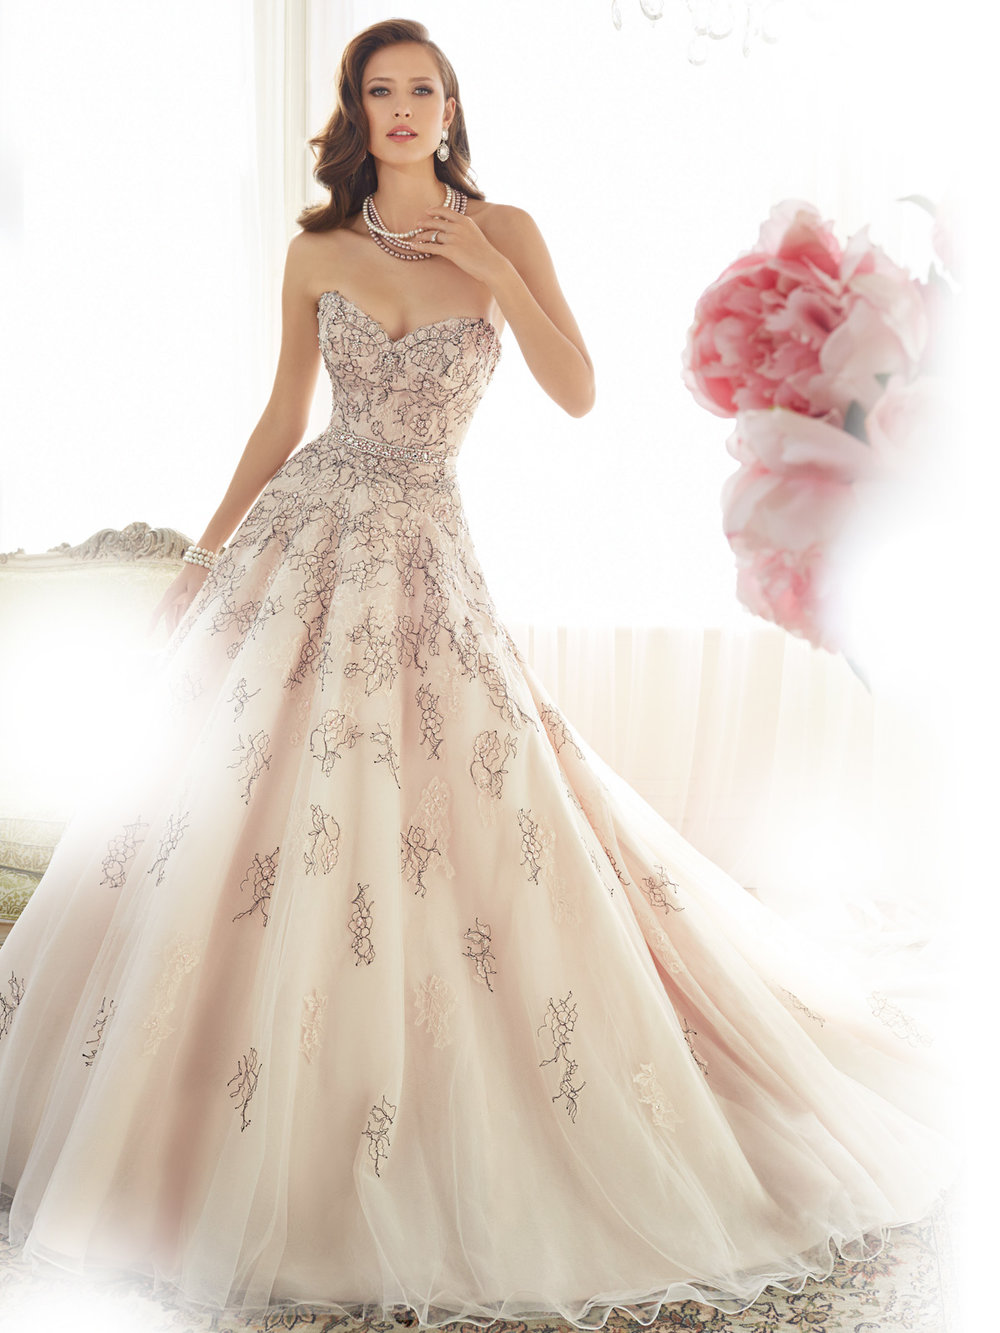 sophia tolli Vintage Rose/Blk Retail Price $1998 | Message for price